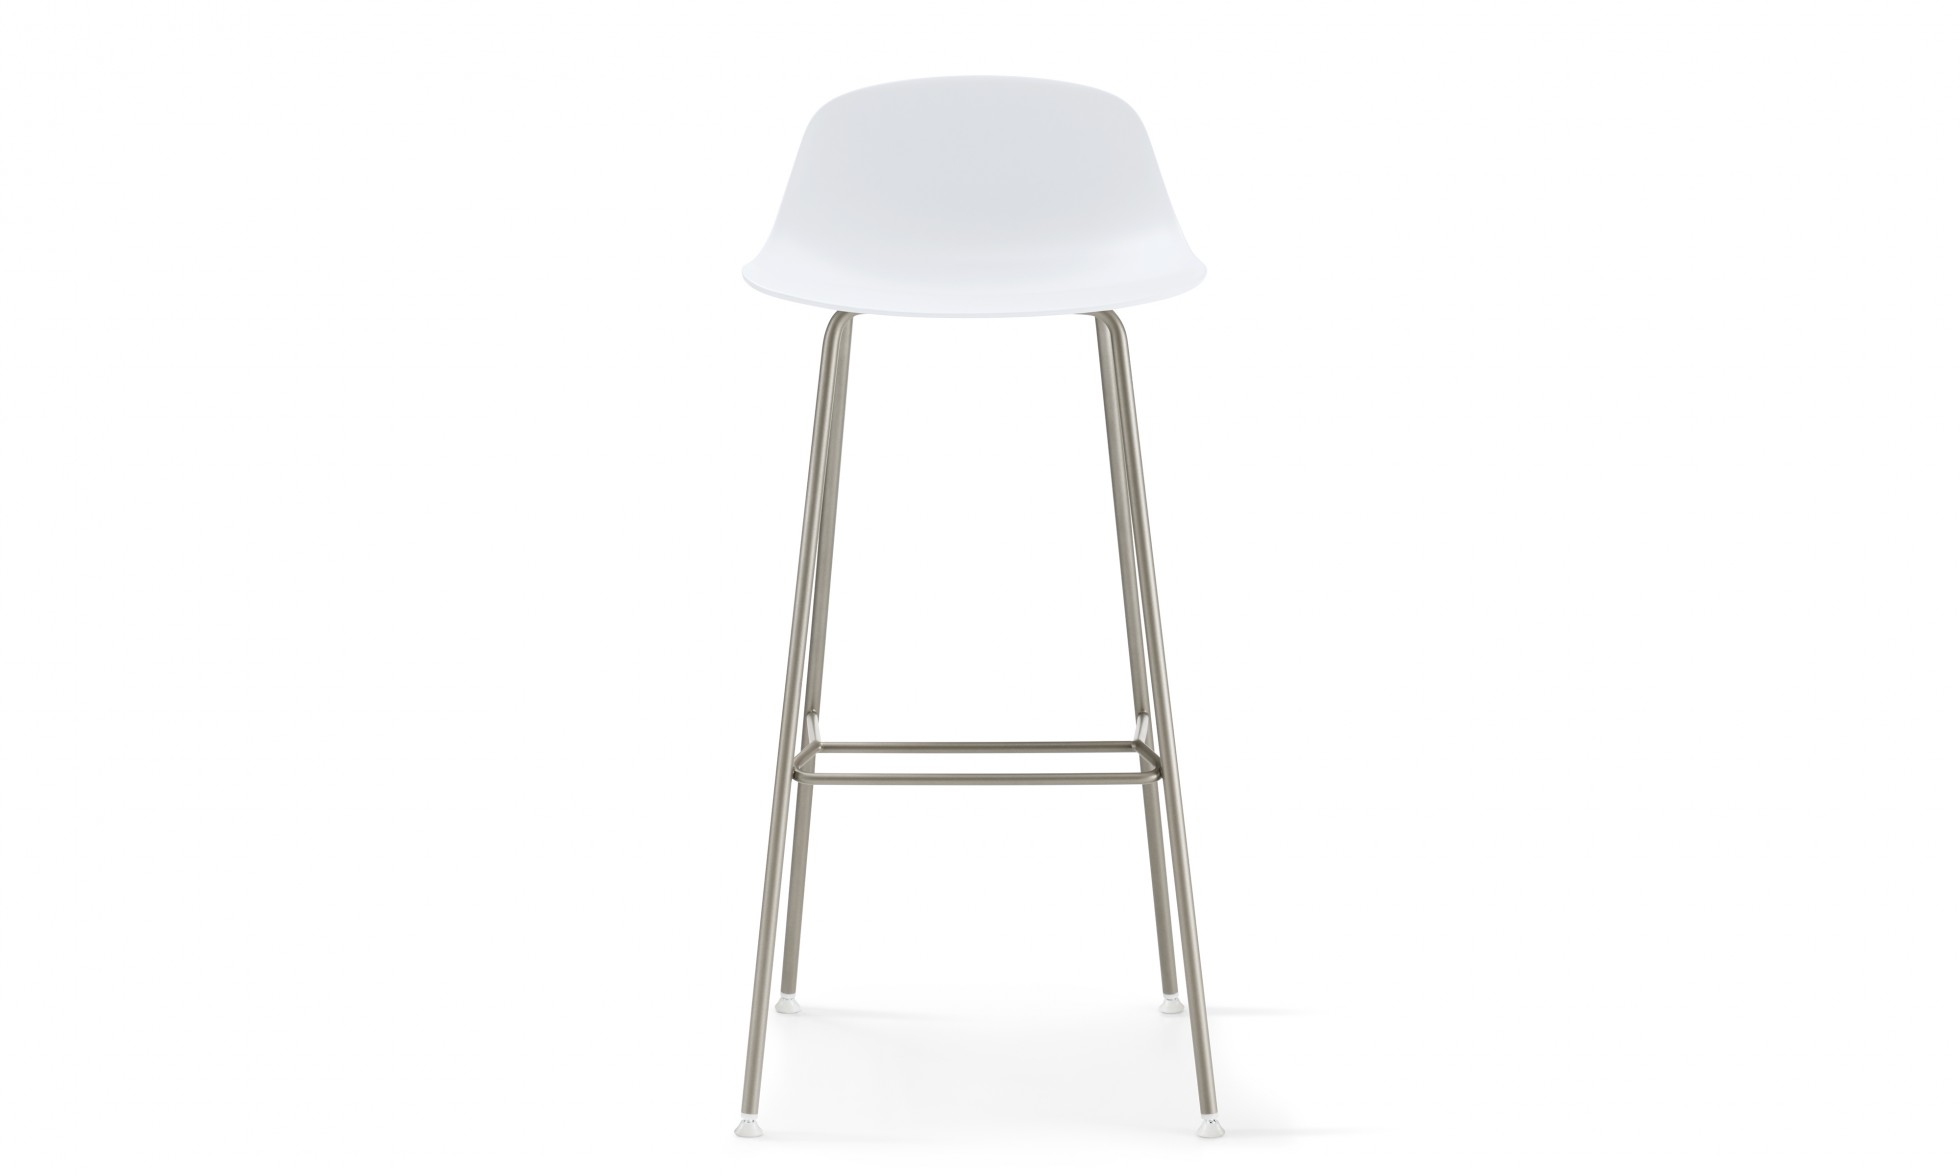 Magnificent Source International Products Jump Stools Pabps2019 Chair Design Images Pabps2019Com